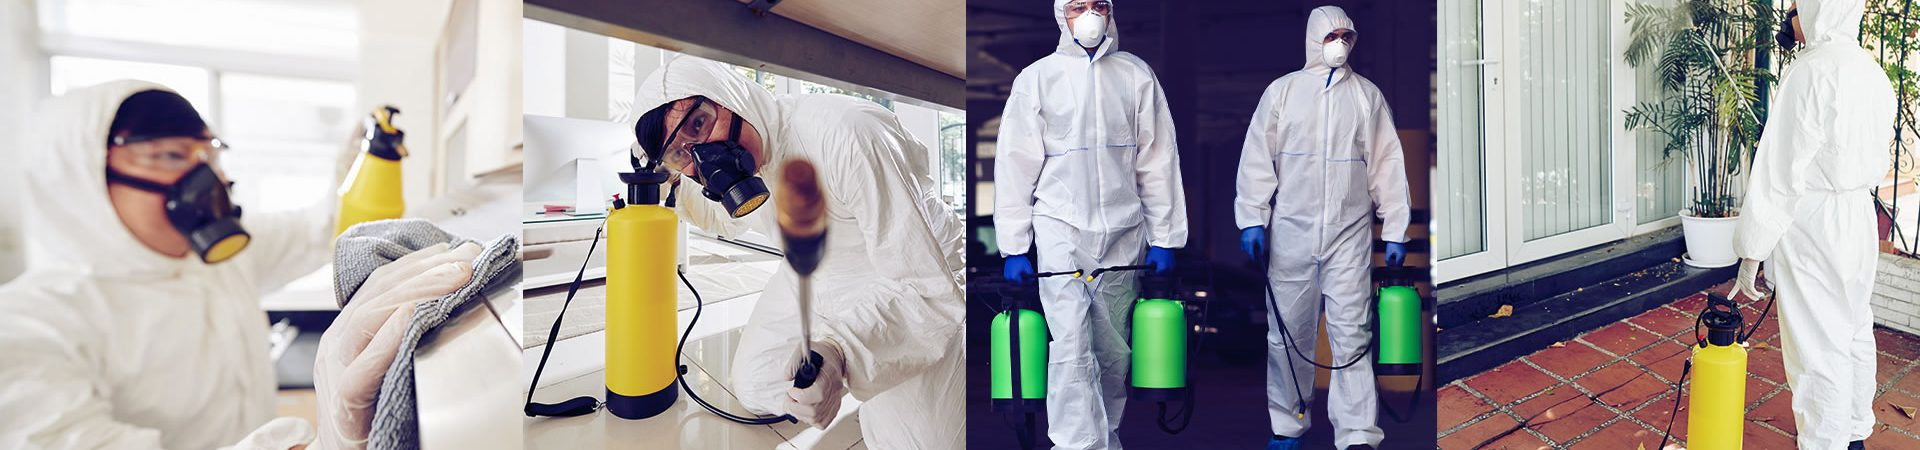 Effective sanitizing and cleaning services